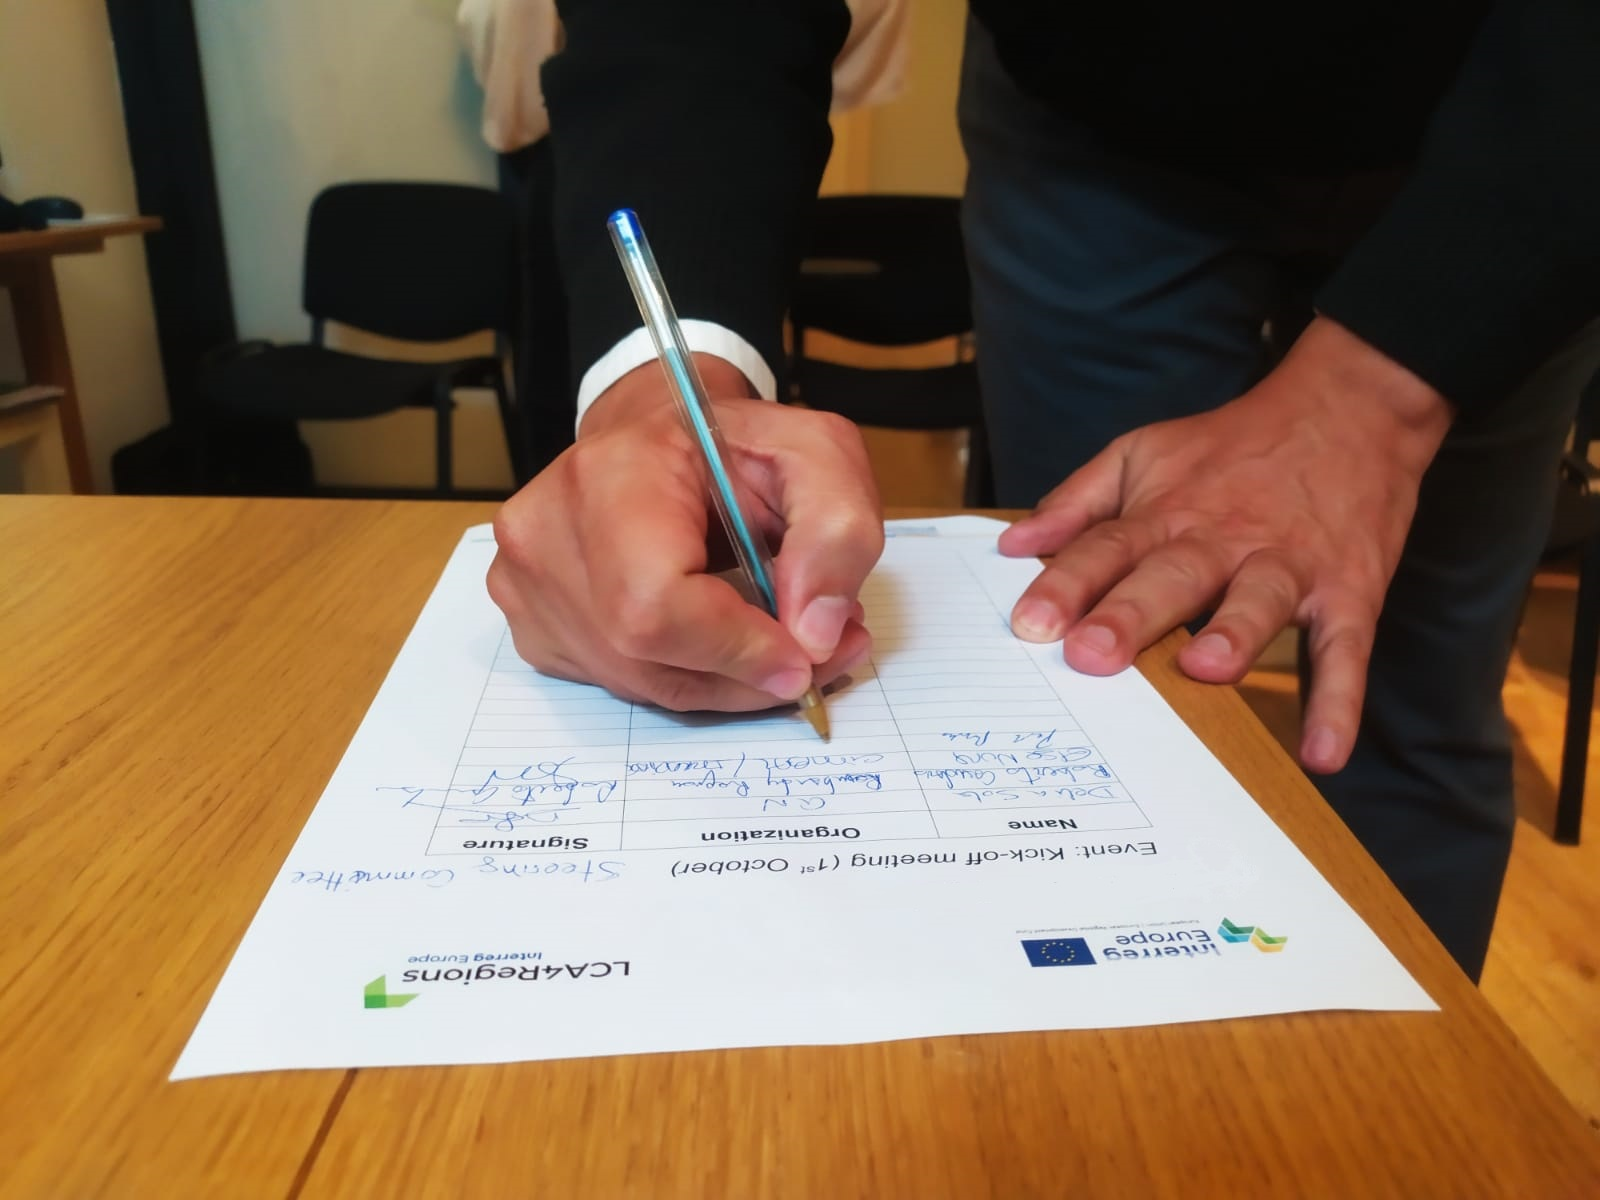 LCA4Regions | Public authorities to work on LCA with the start of the project